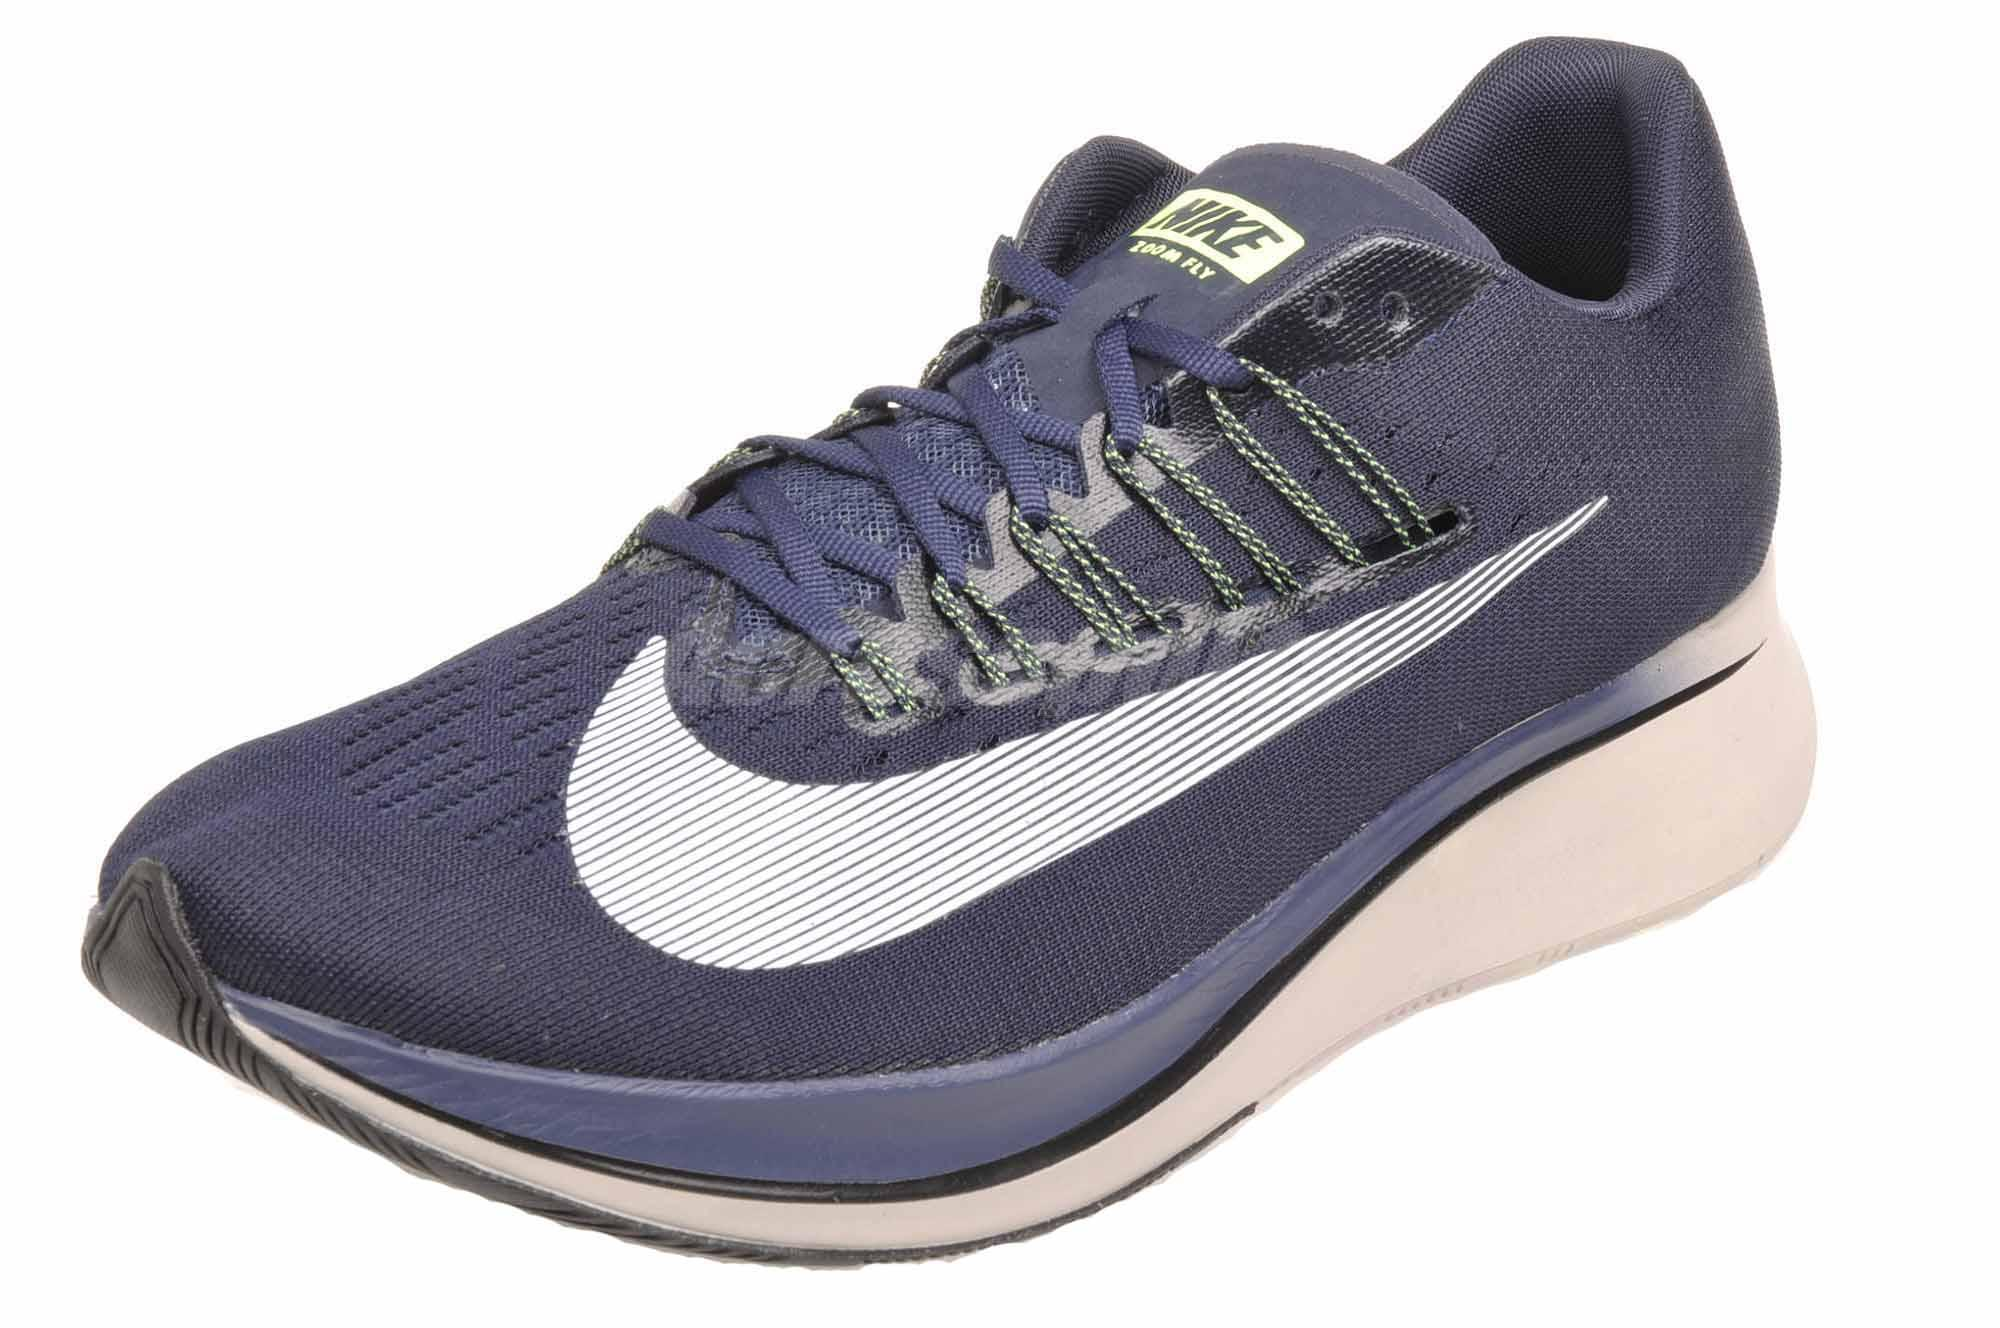 Details about NIKE ZOOM FLY OBSIDIAN INDIGO RUNNING SHOE 880848 405 MENS SIZE 8 WOMENS 9.5 NEW